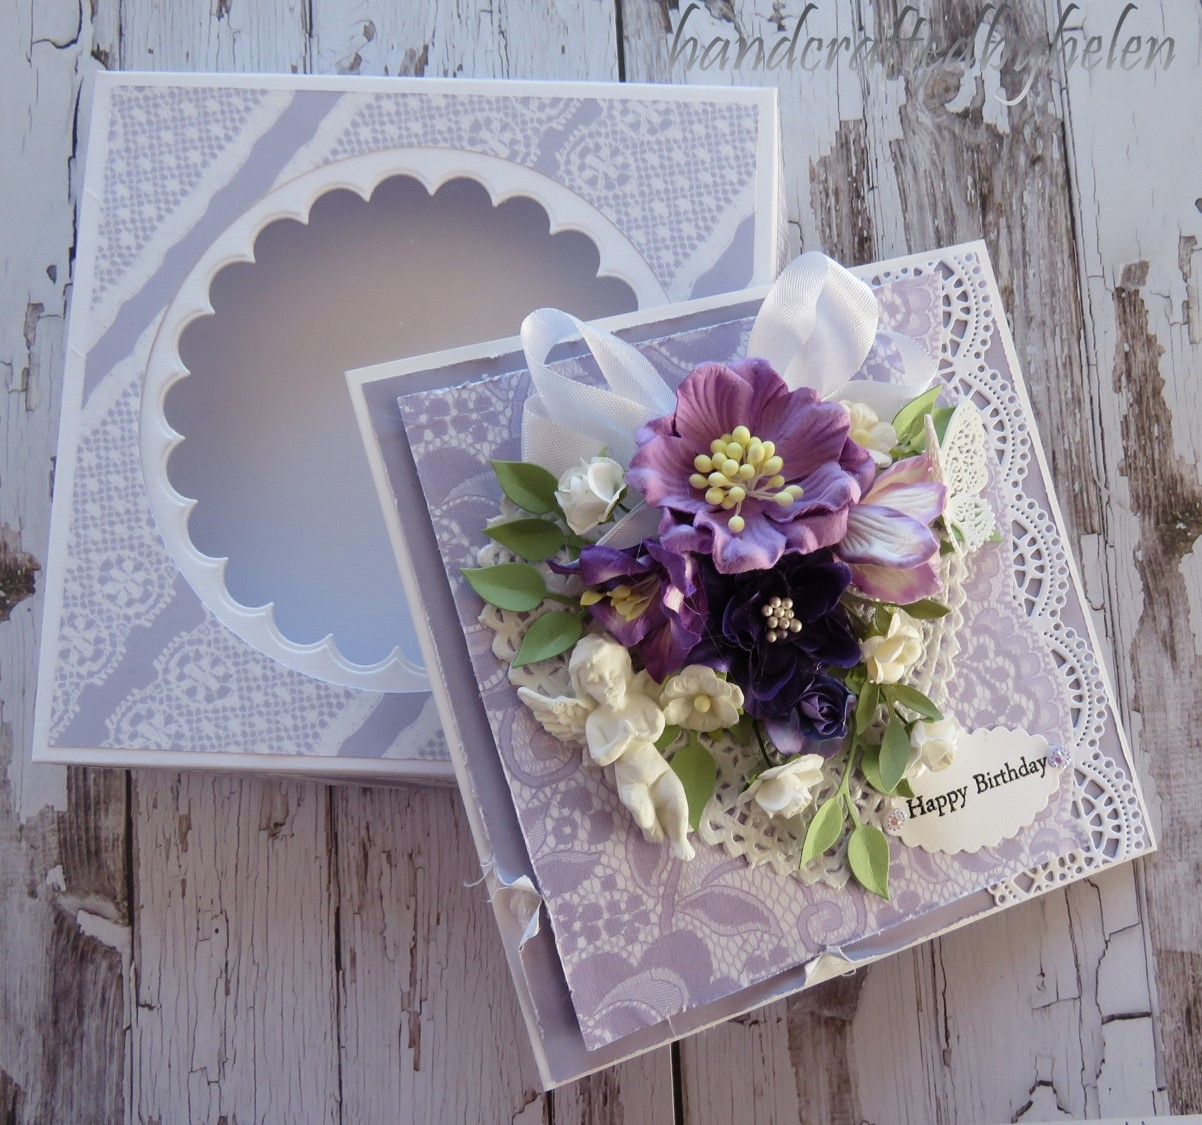 Handcrafted by Helen: Purple lace and flowers shabby Chic card